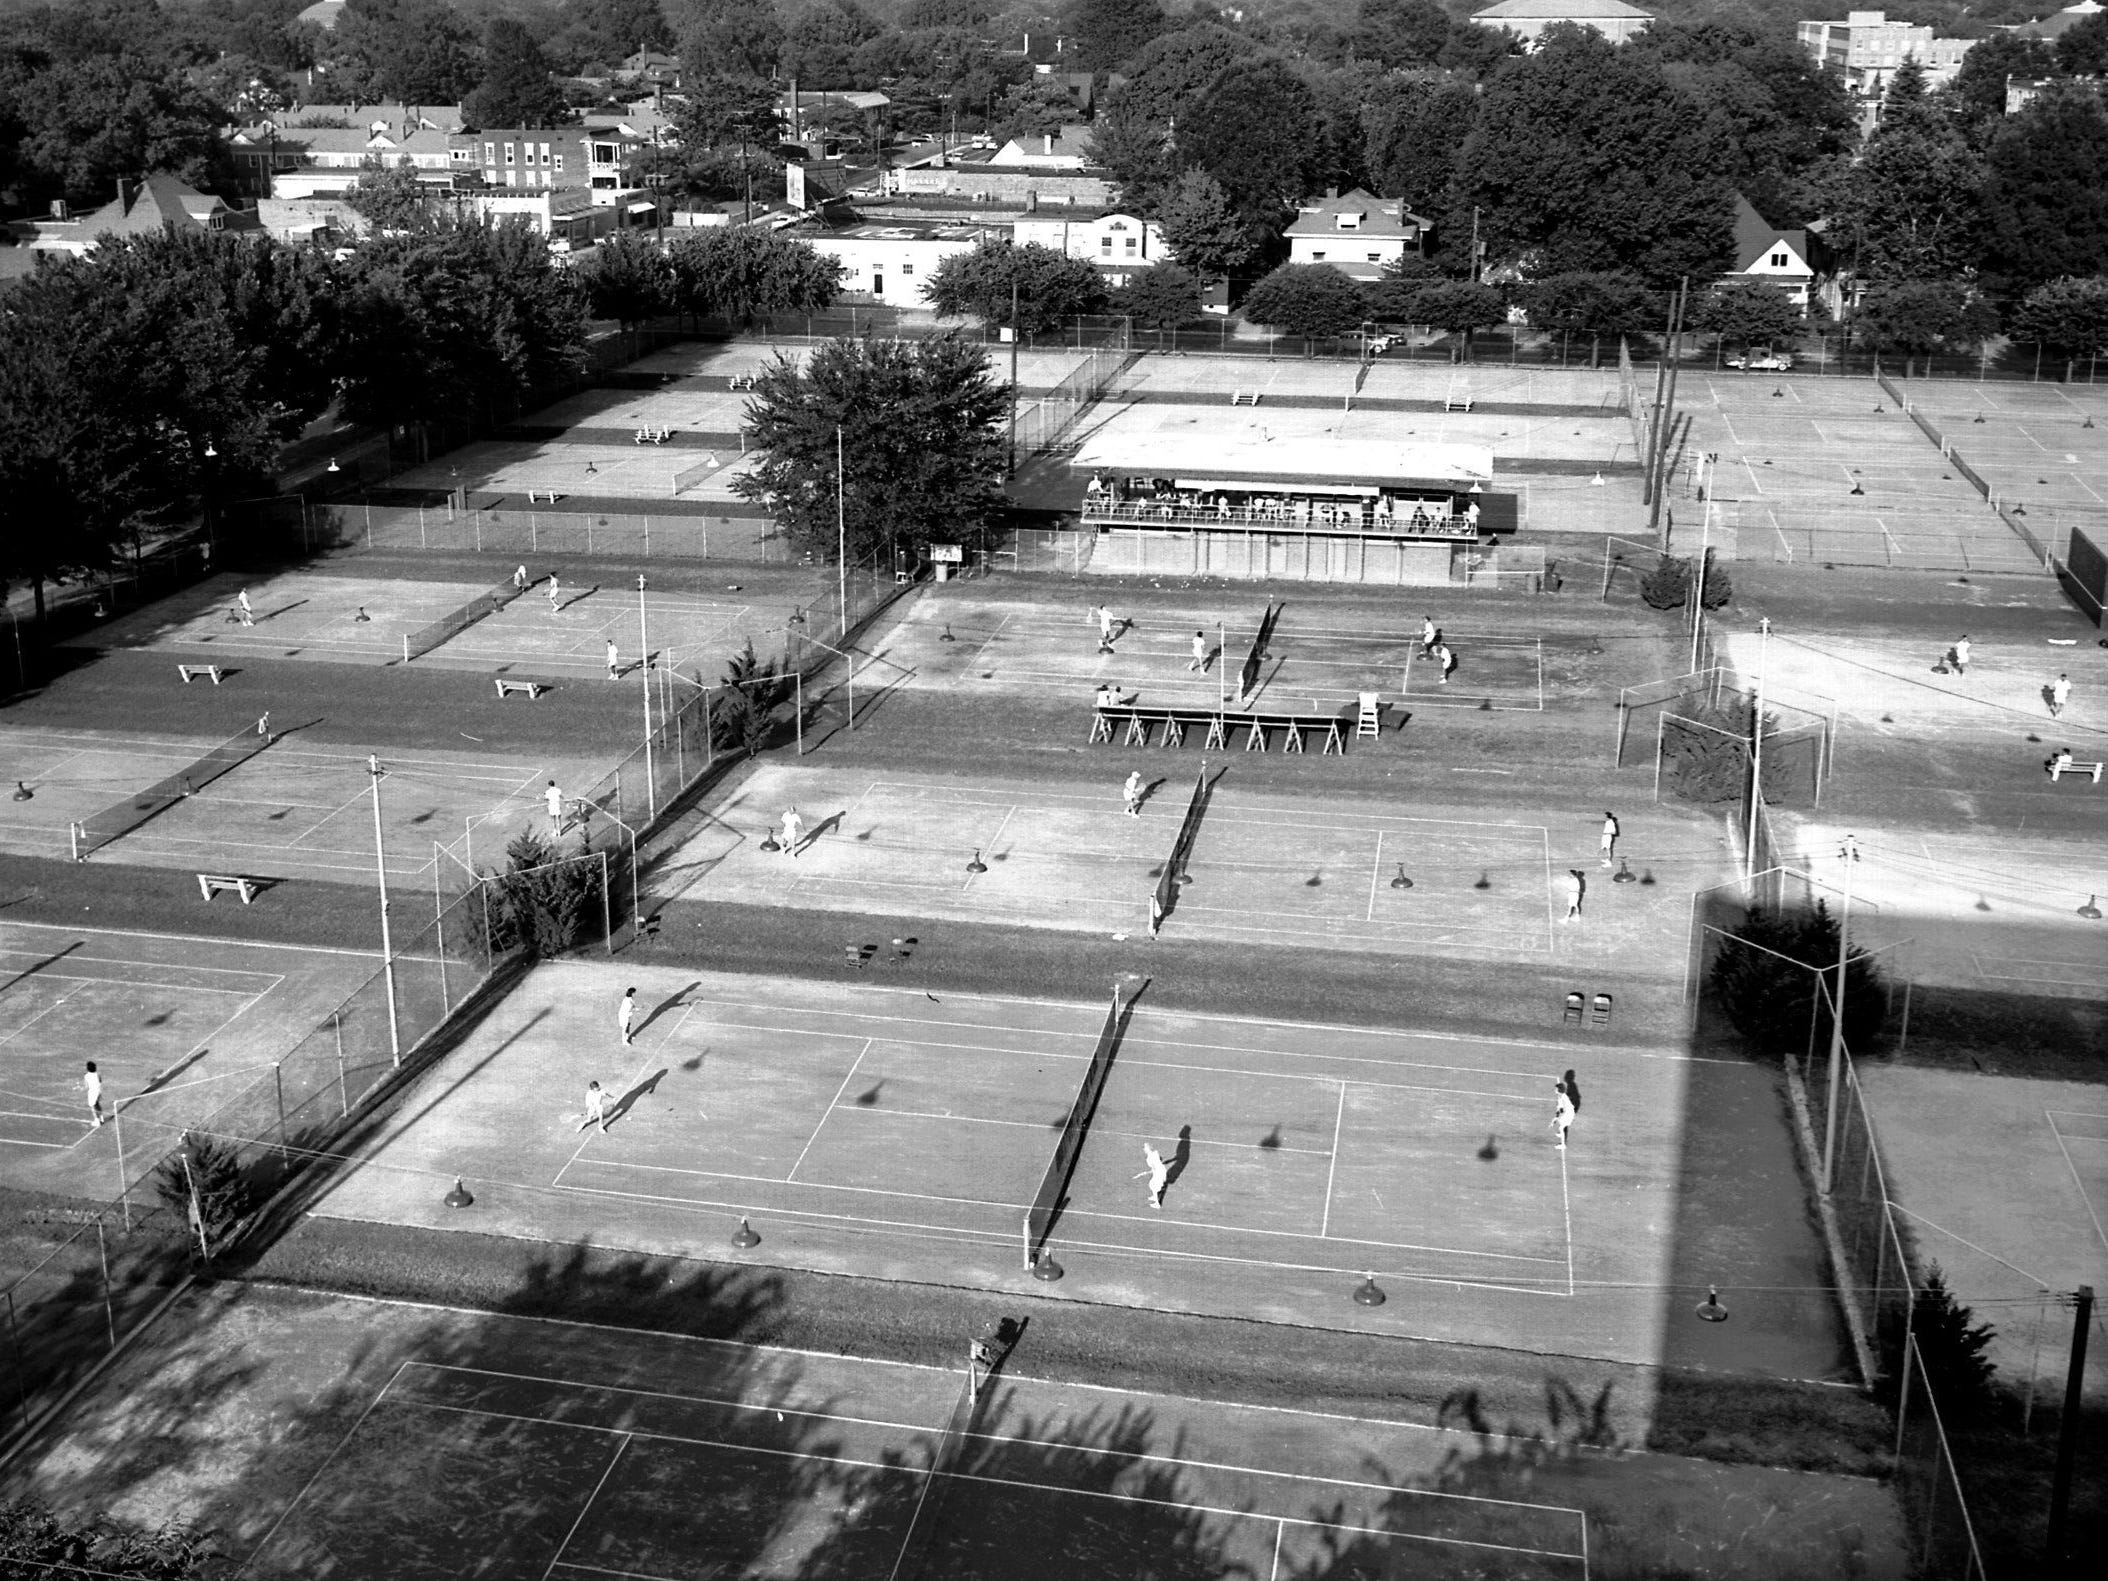 John Rogers Tennis Center in Beauregard Park teems with activity during the City Open tournament in July 1960. Jefferson Avenue is at left in this photograph taken looking toward the east.